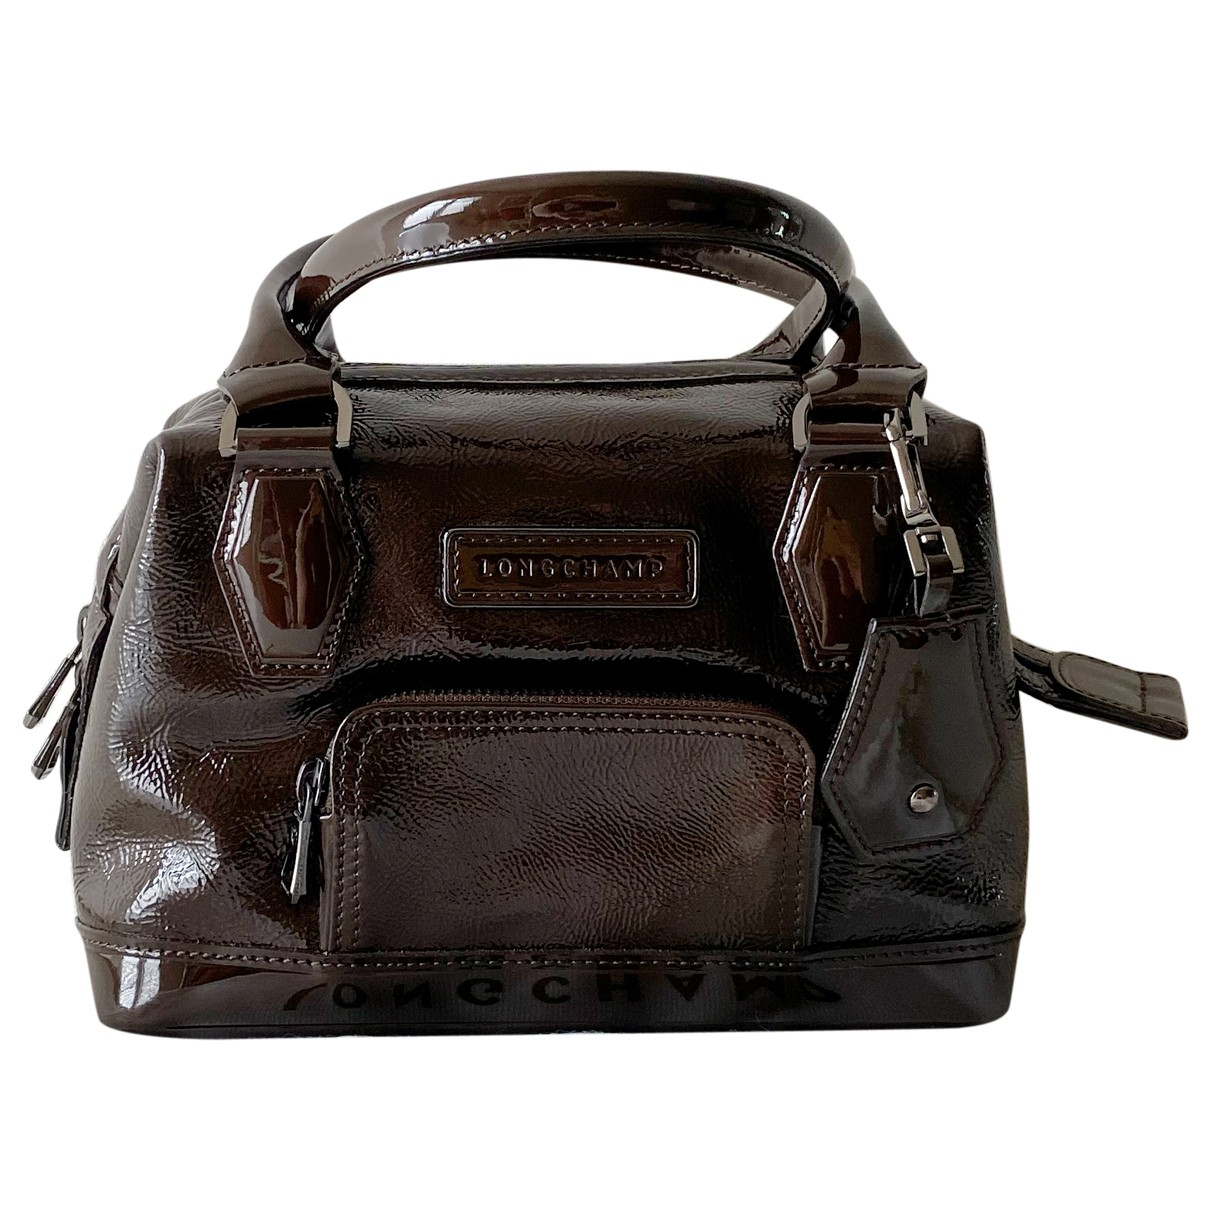 Longchamp Légende Brown Patent leather handbag for Women N